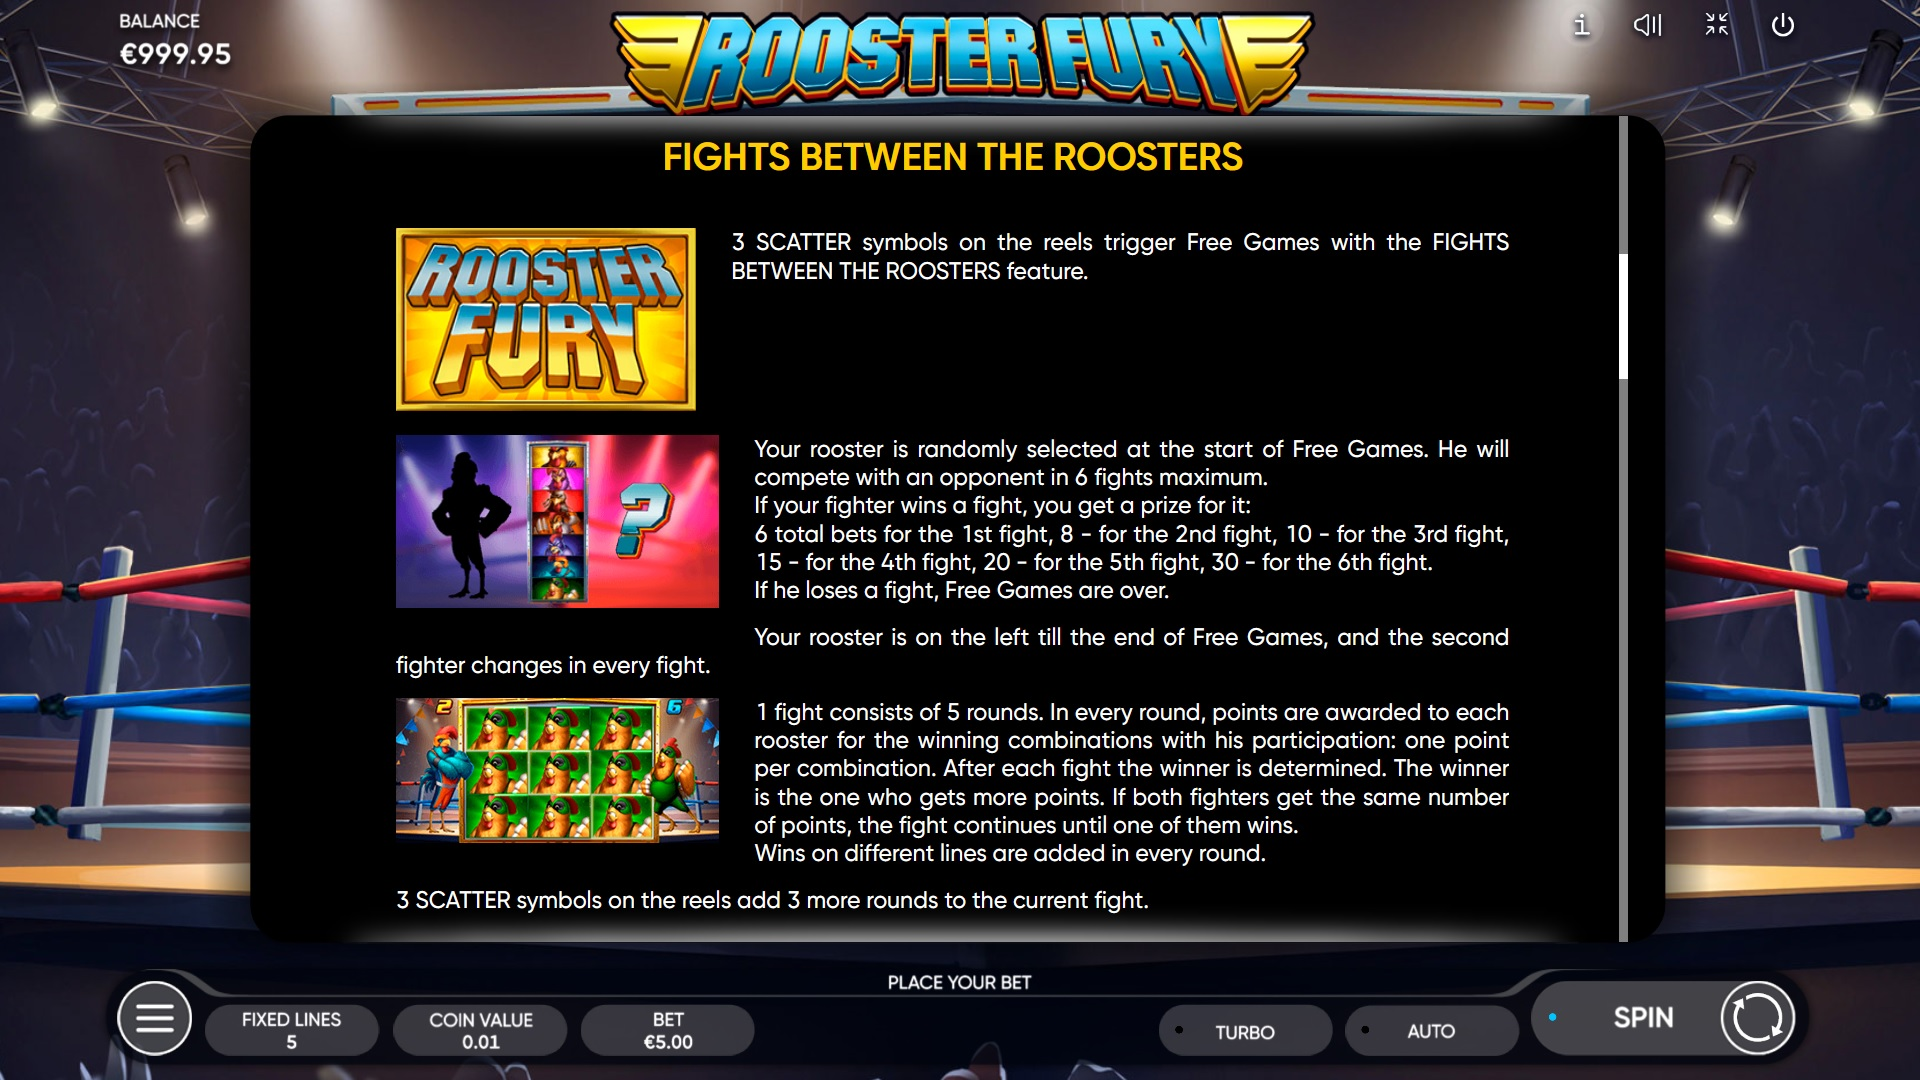 How to win big in Rooster Fury – Fights Between Roosters